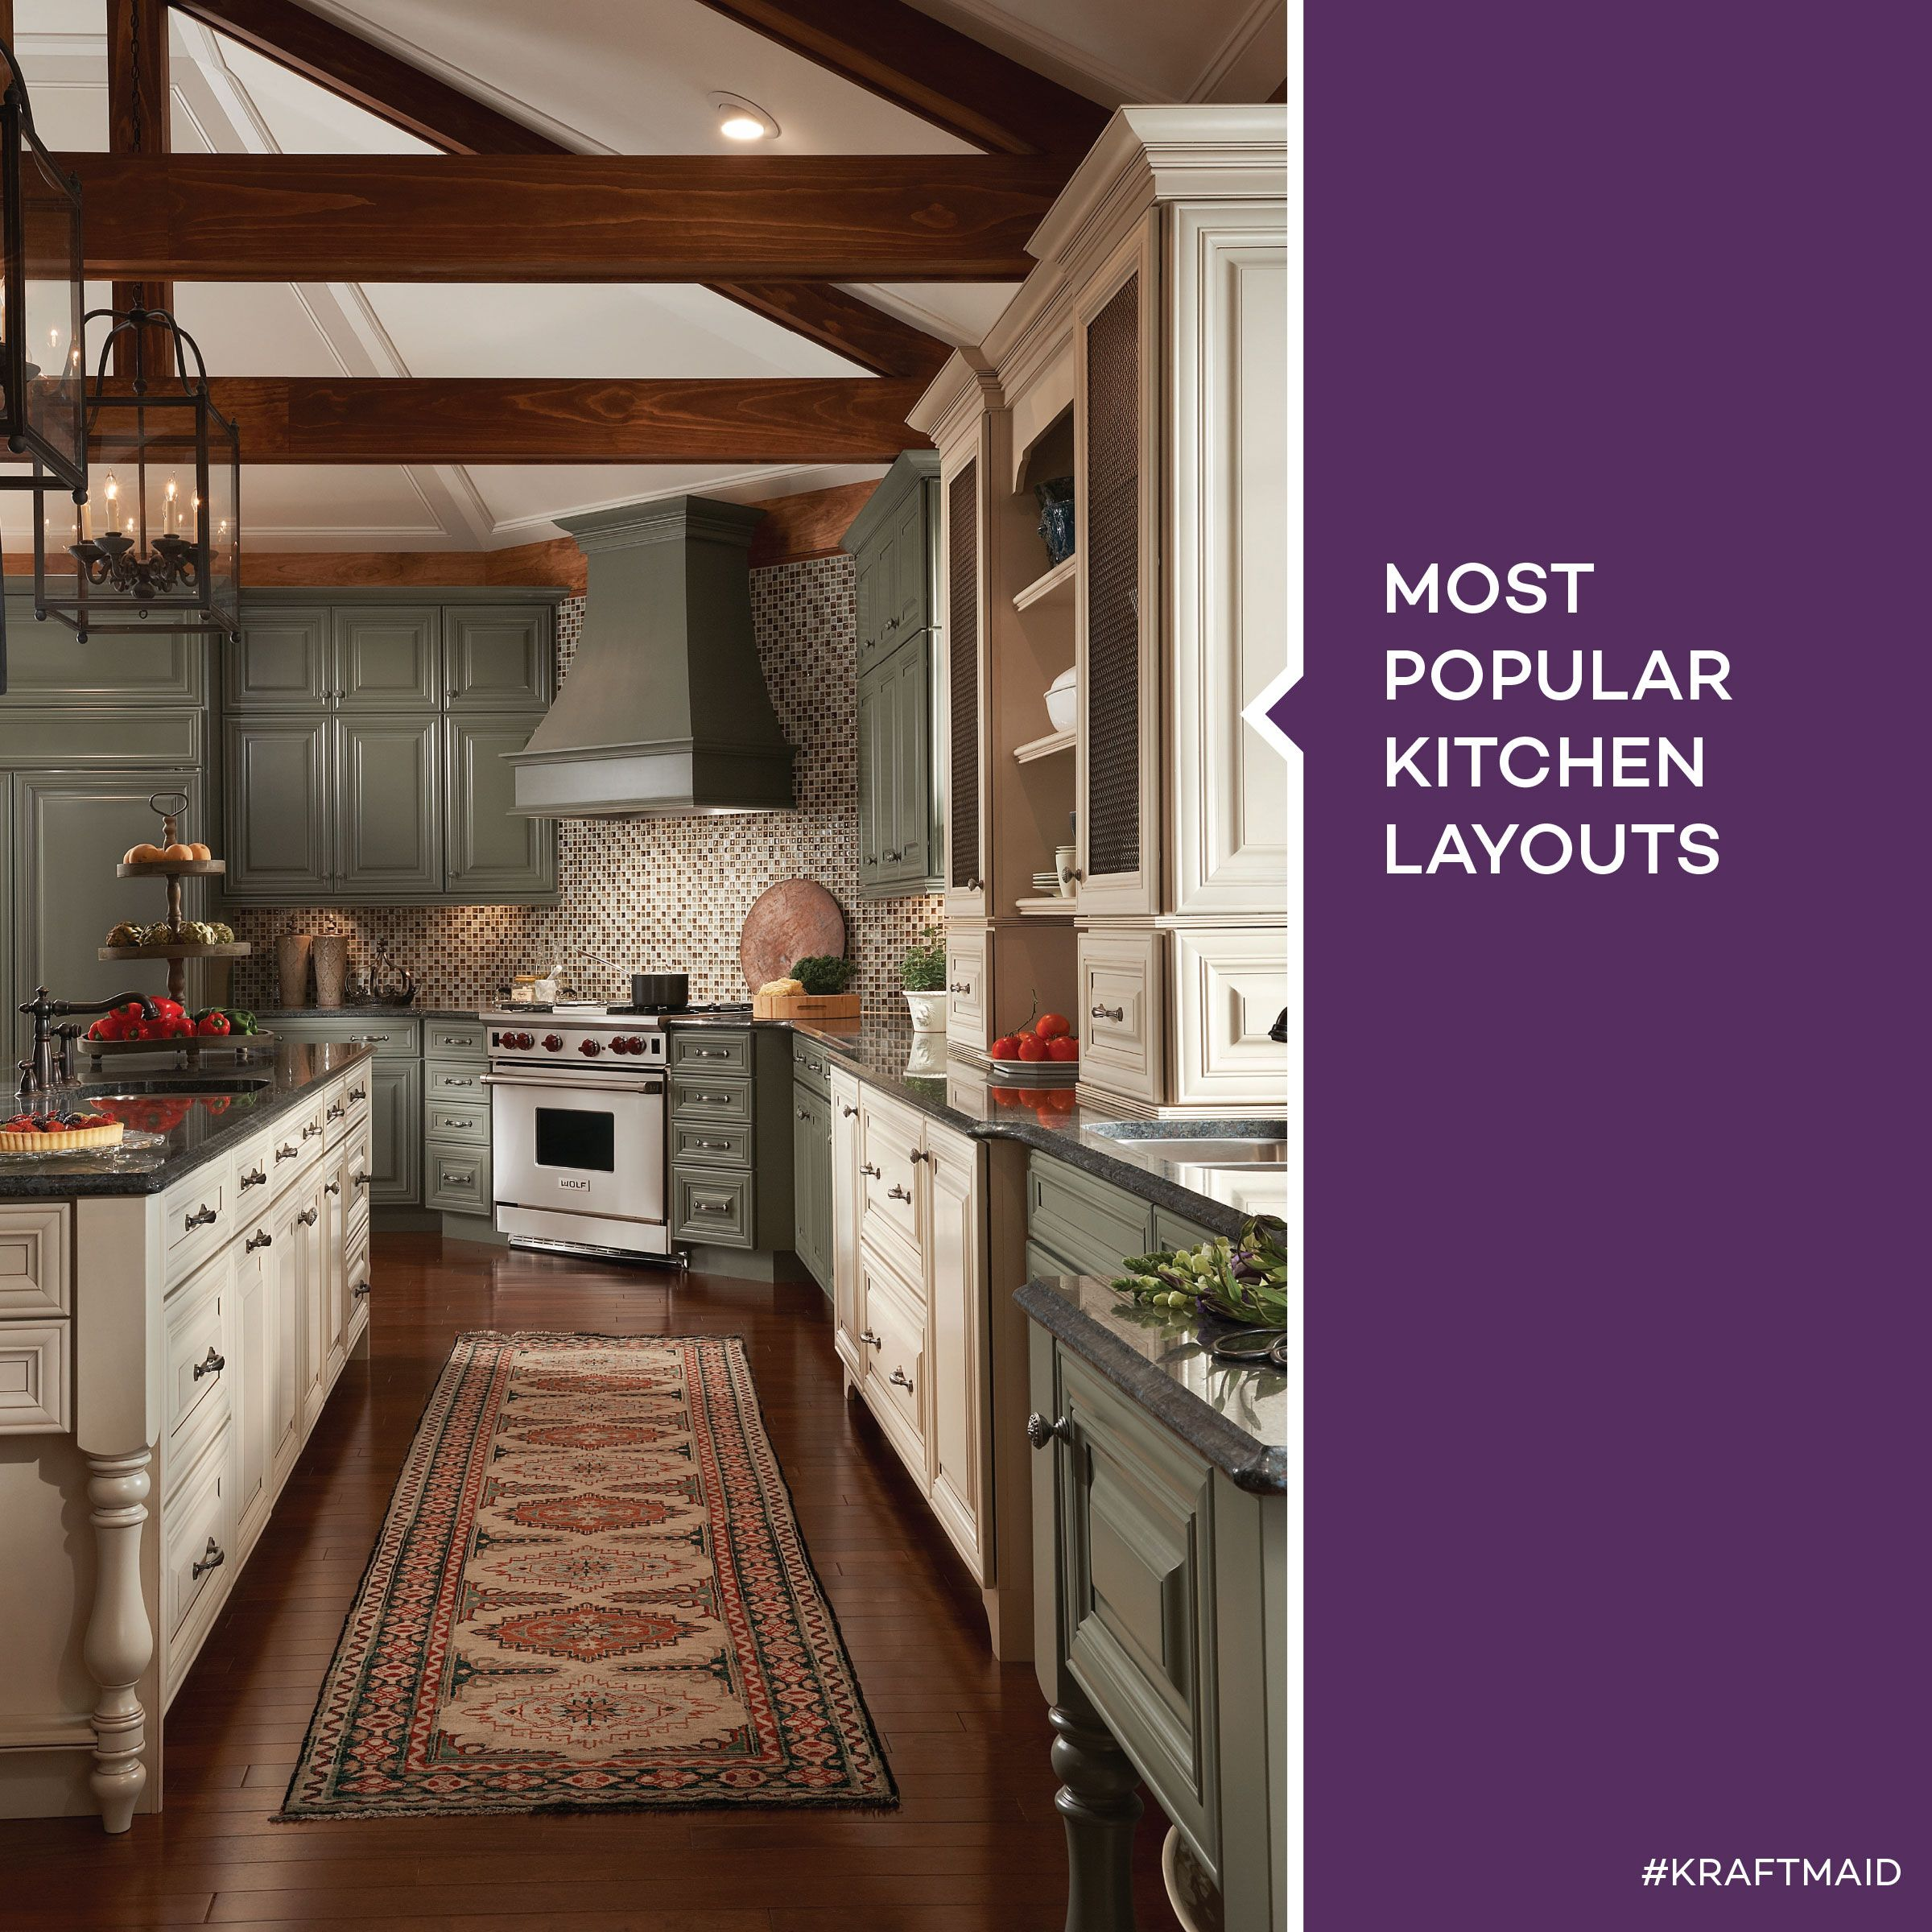 Small G Shaped Kitchen Designs: 5 Most Popular Kitchen Layouts